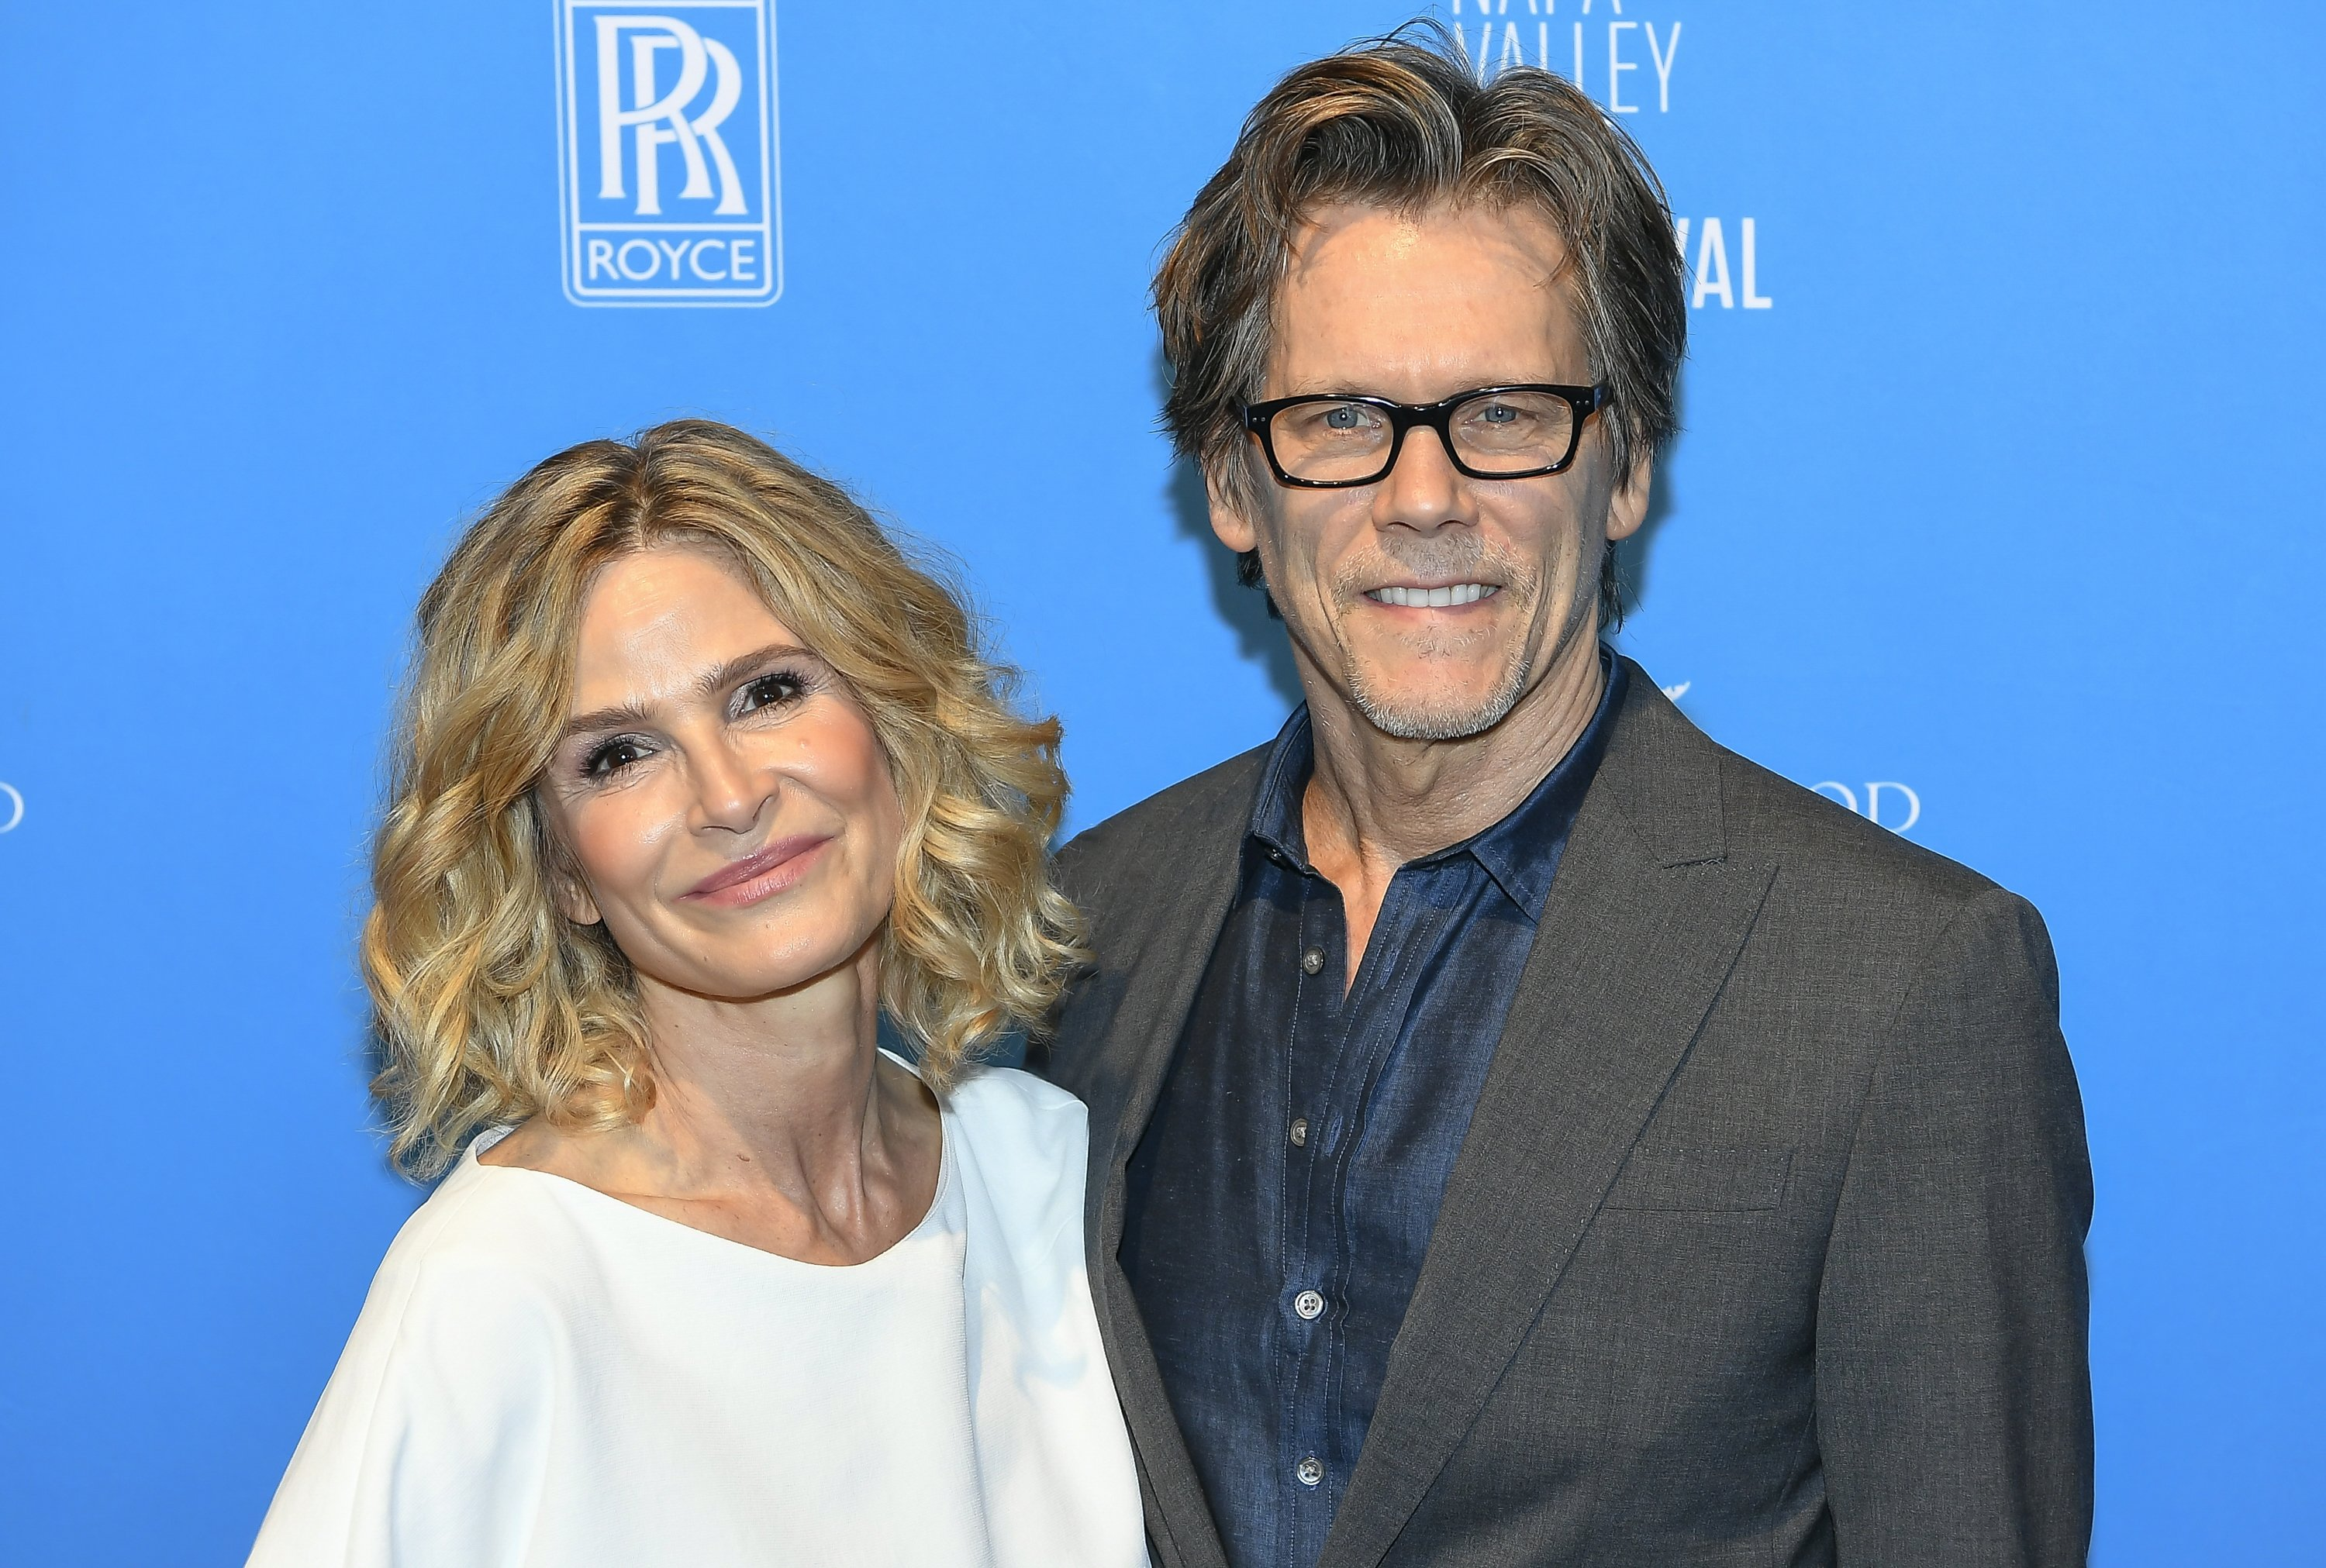 """Kyra Sedgewick and her husband, Kevin Bacon at the """"Napa Valley Film Festival"""" in Napa, November, 2013. 